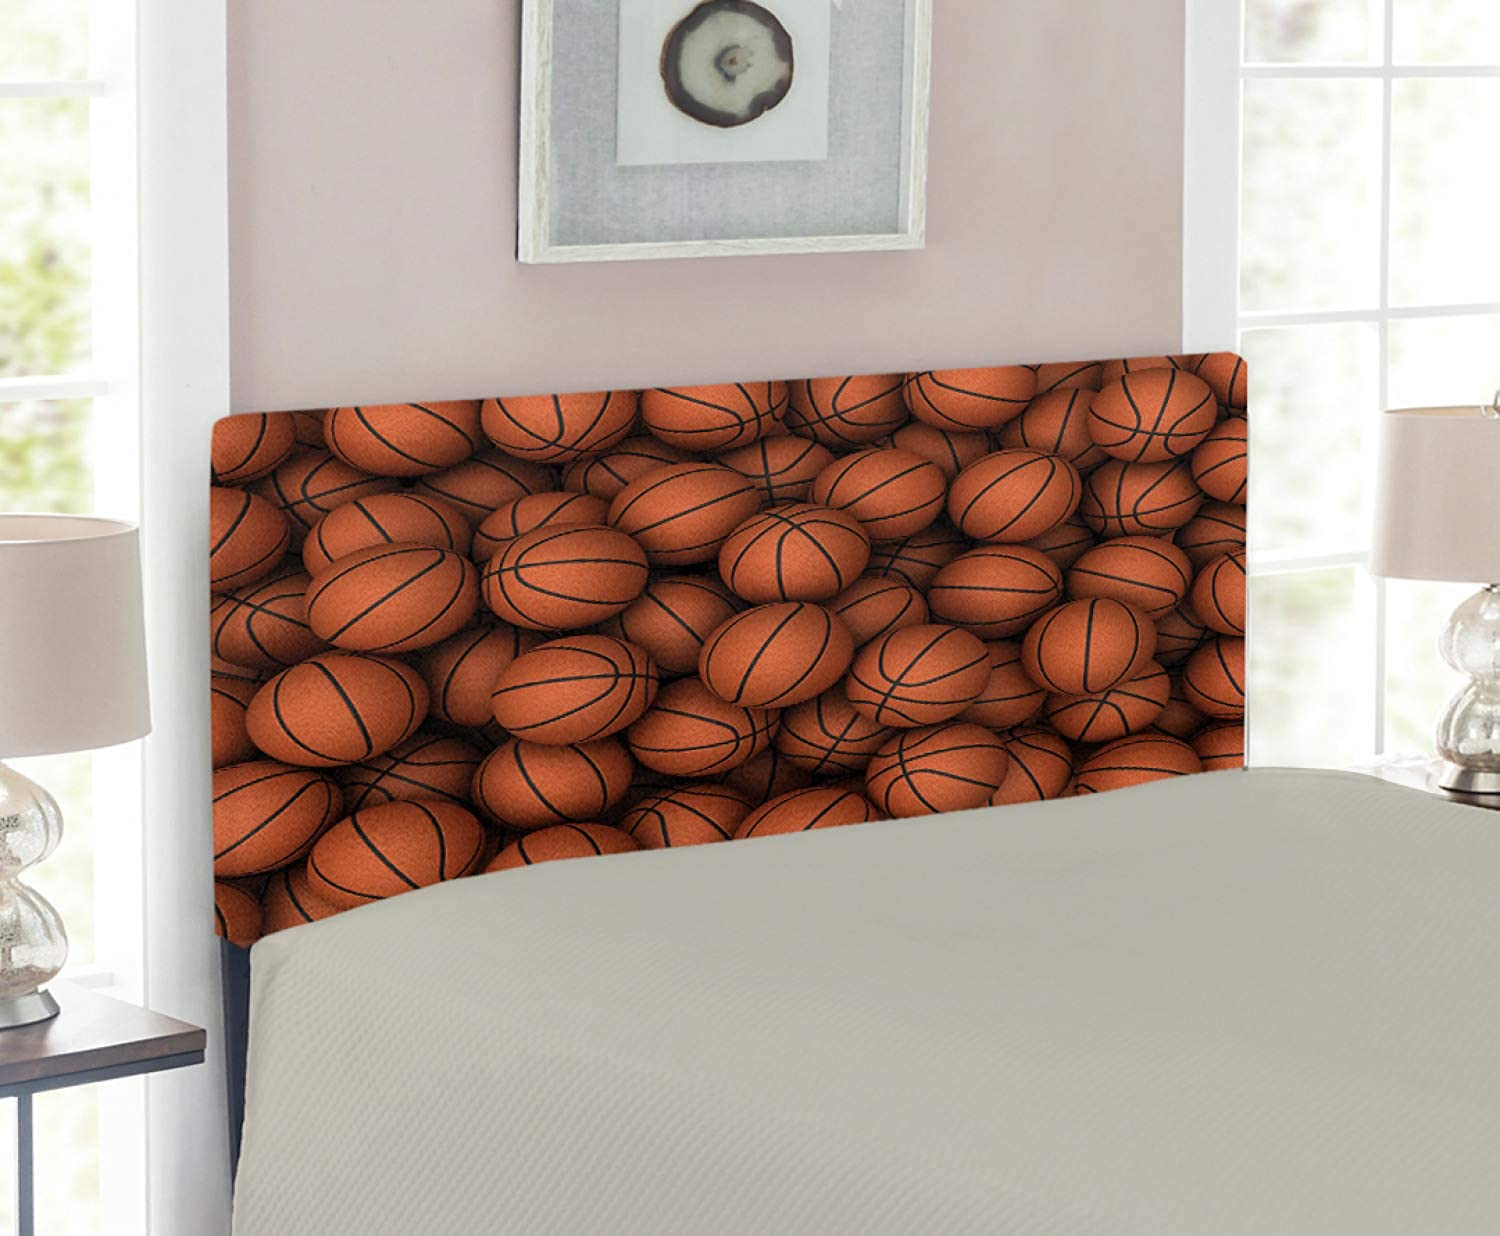 Lunarable Sports Headboard for Twin Size Bed, Basketballs The Two Handed Slam Practice Athletic Sport Events Illustration, Upholstered Decorative Metal Headboard with Memory Foam, Dark orange Black